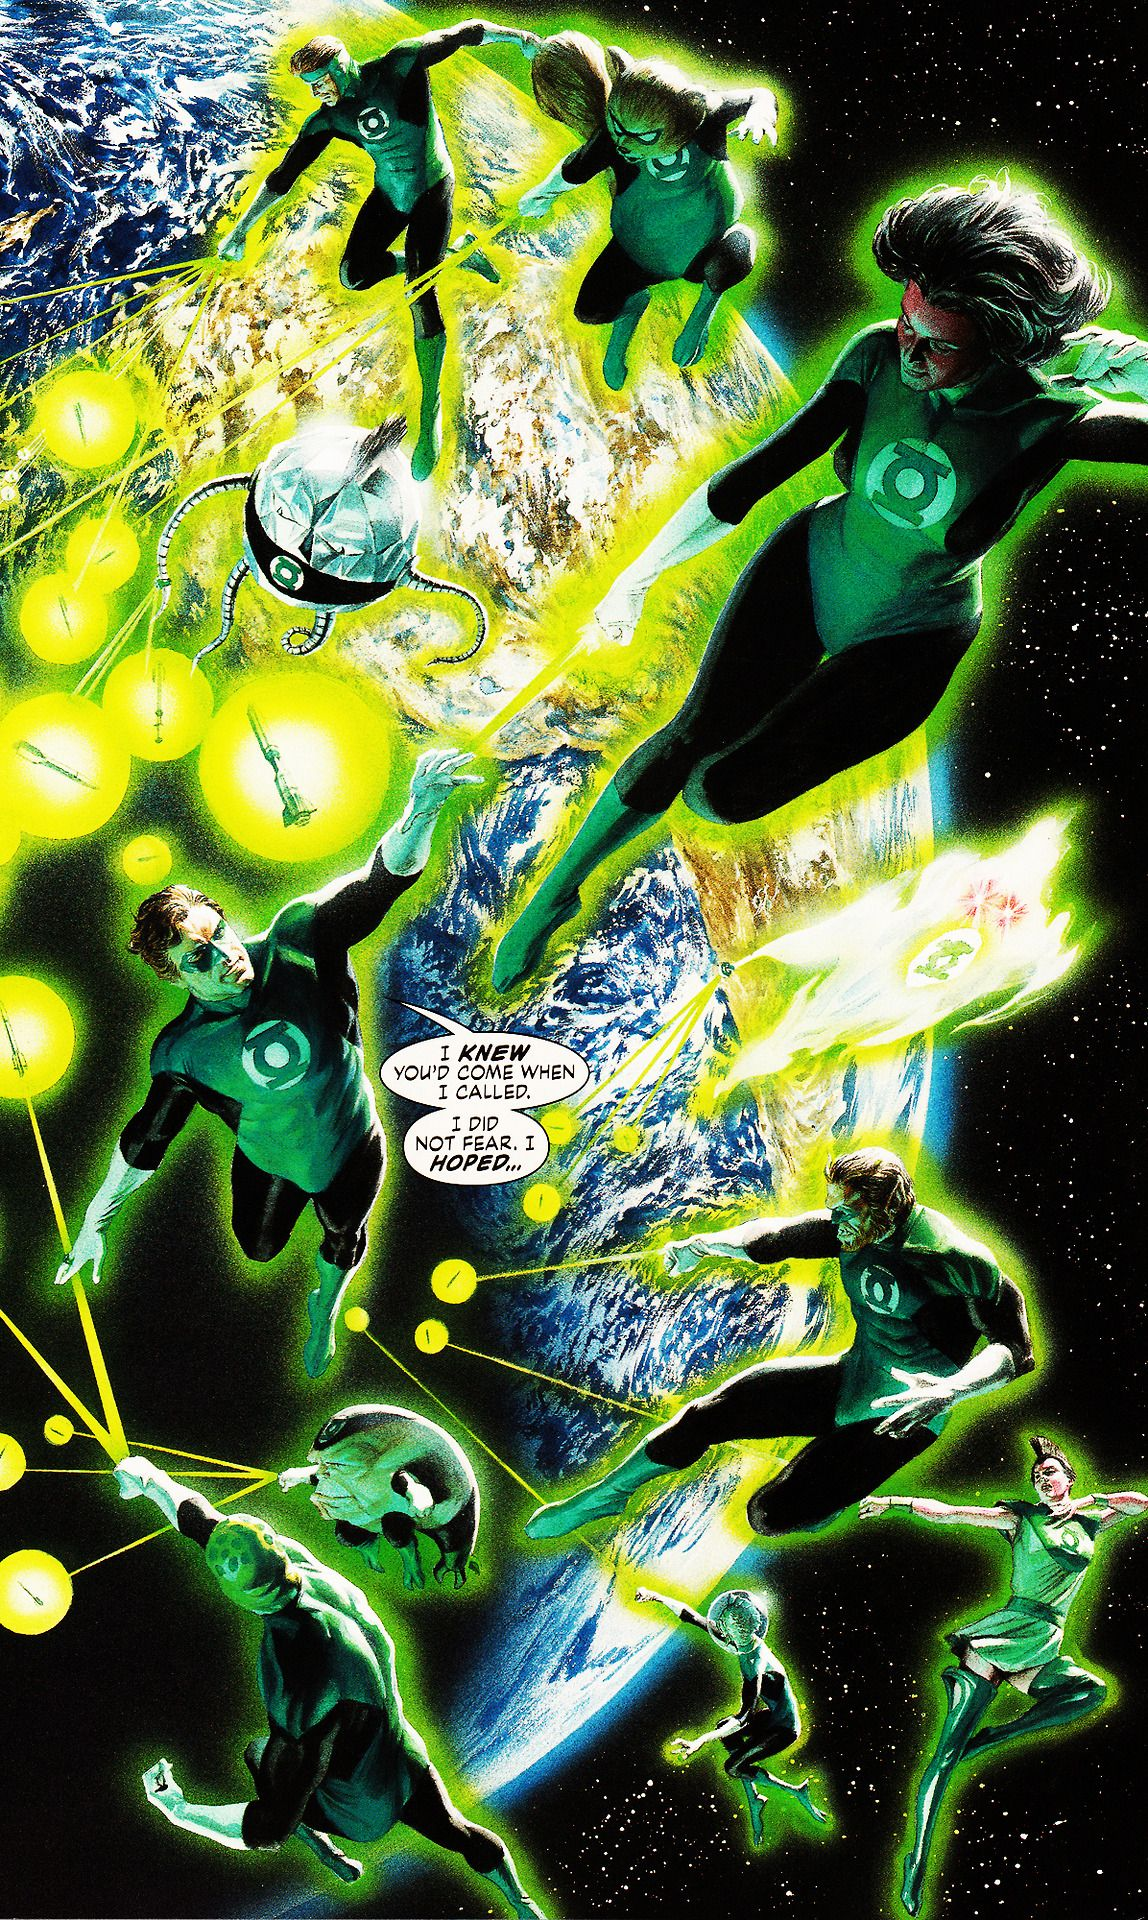 The Green Lantern Corps Justice #12 by Alex Ross